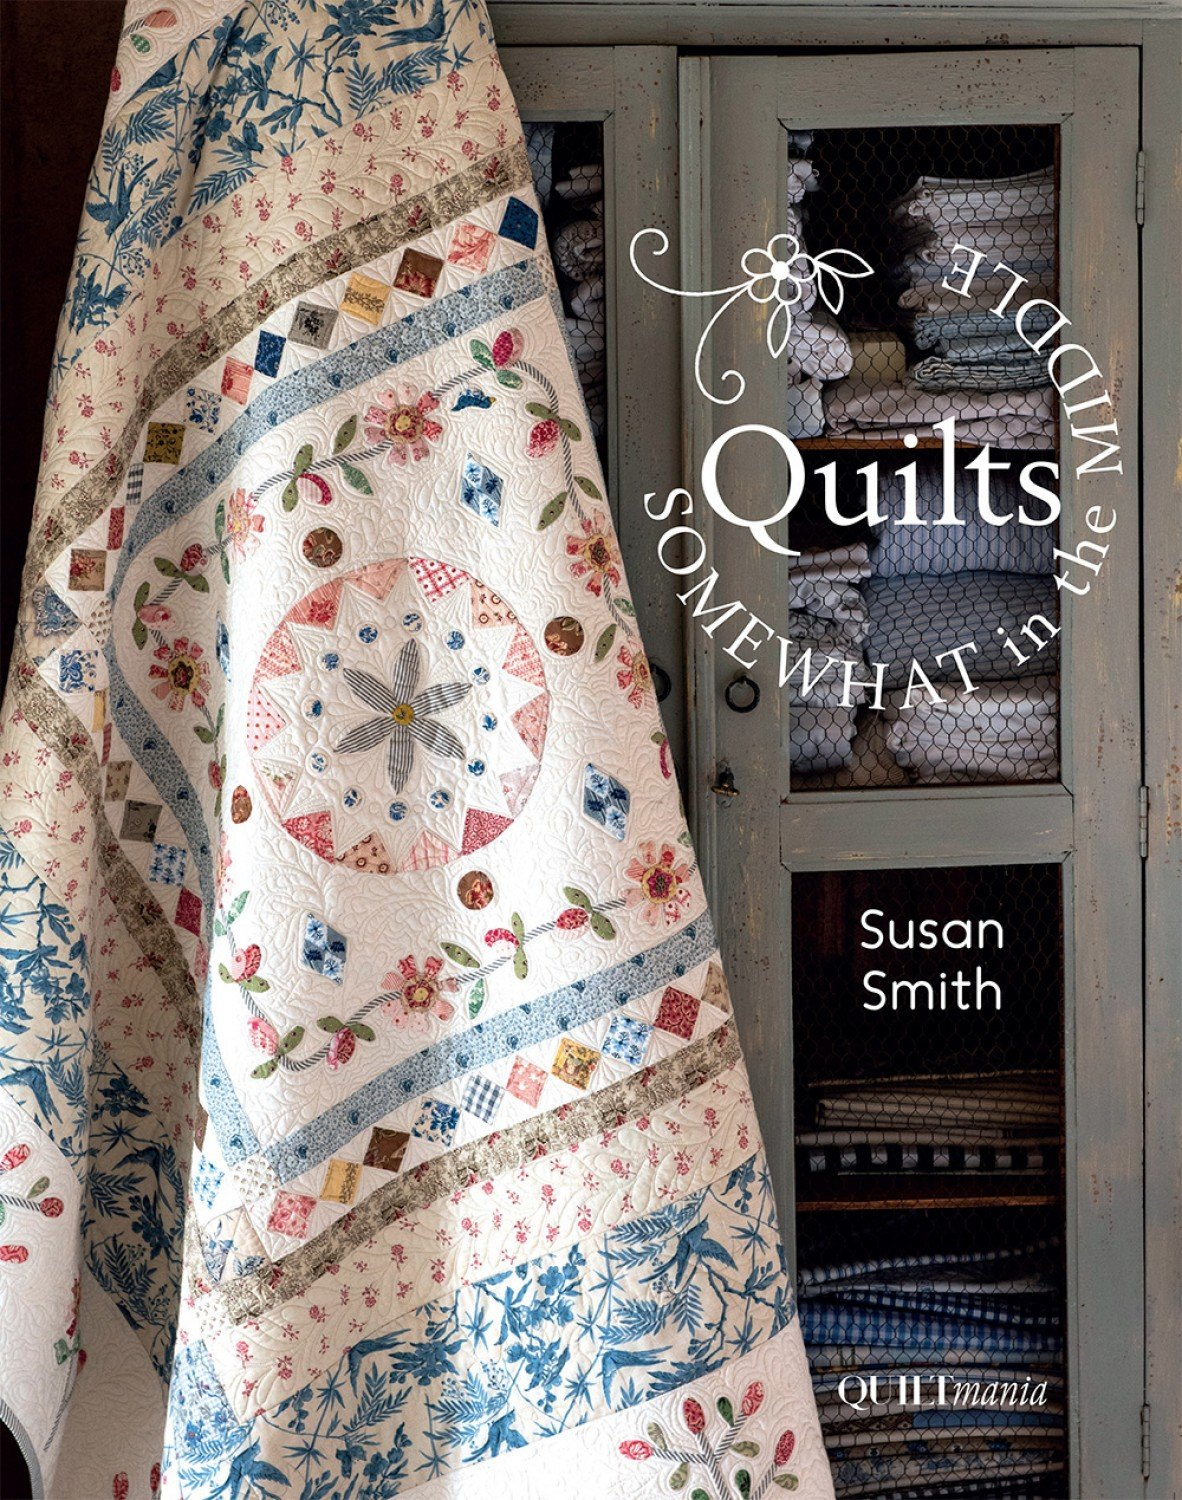 Quilting Somewhat in the Middle by Quiltmania